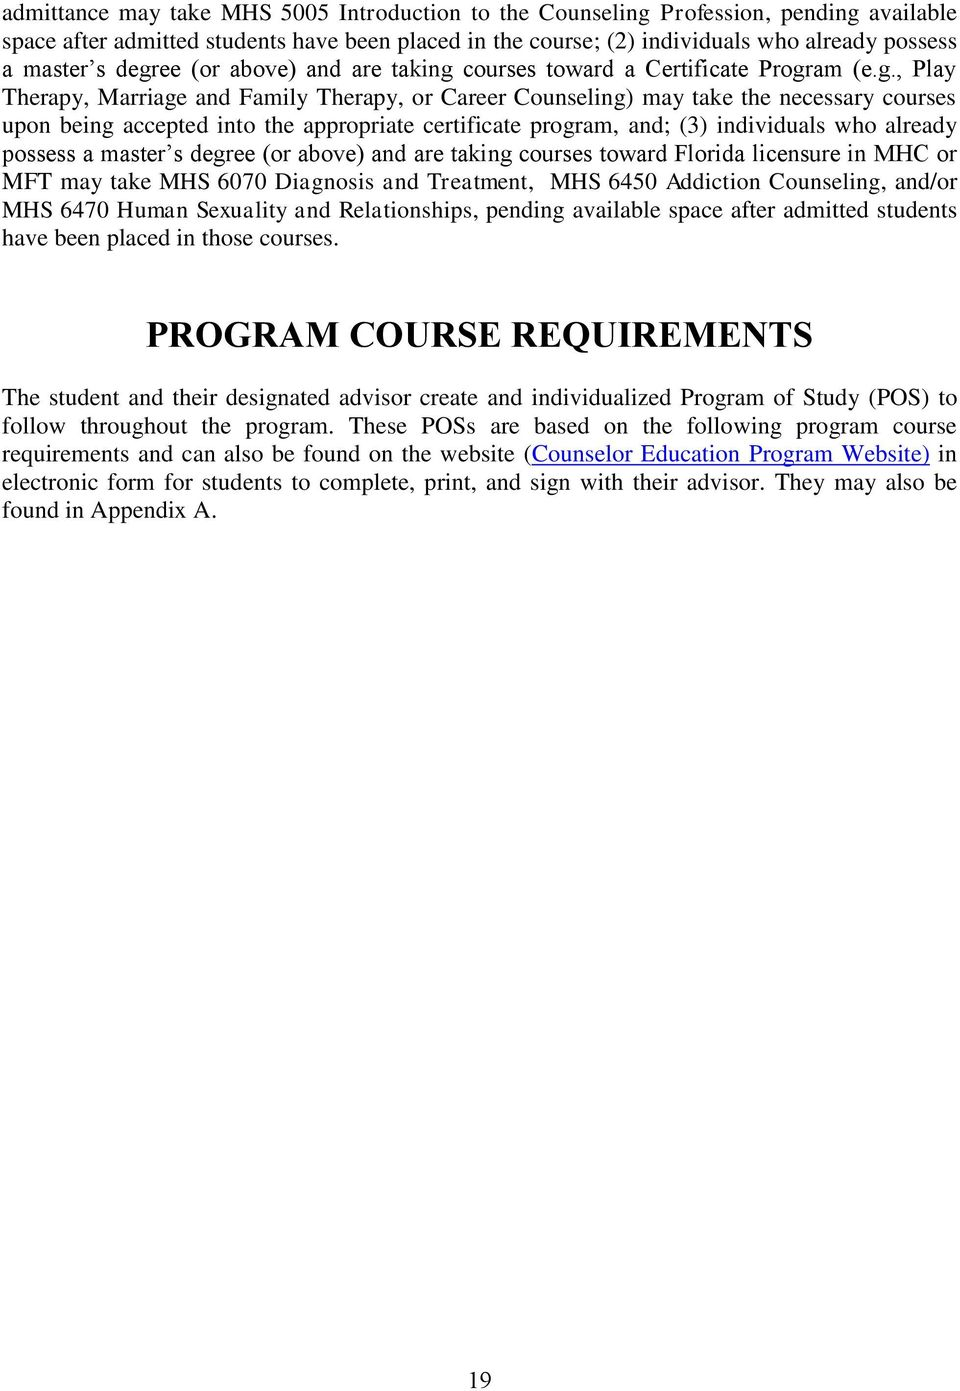 the appropriate certificate program, and; (3) individuals who already possess a master s degree (or above) and are taking courses toward Florida licensure in MHC or MFT may take MHS 6070 Diagnosis